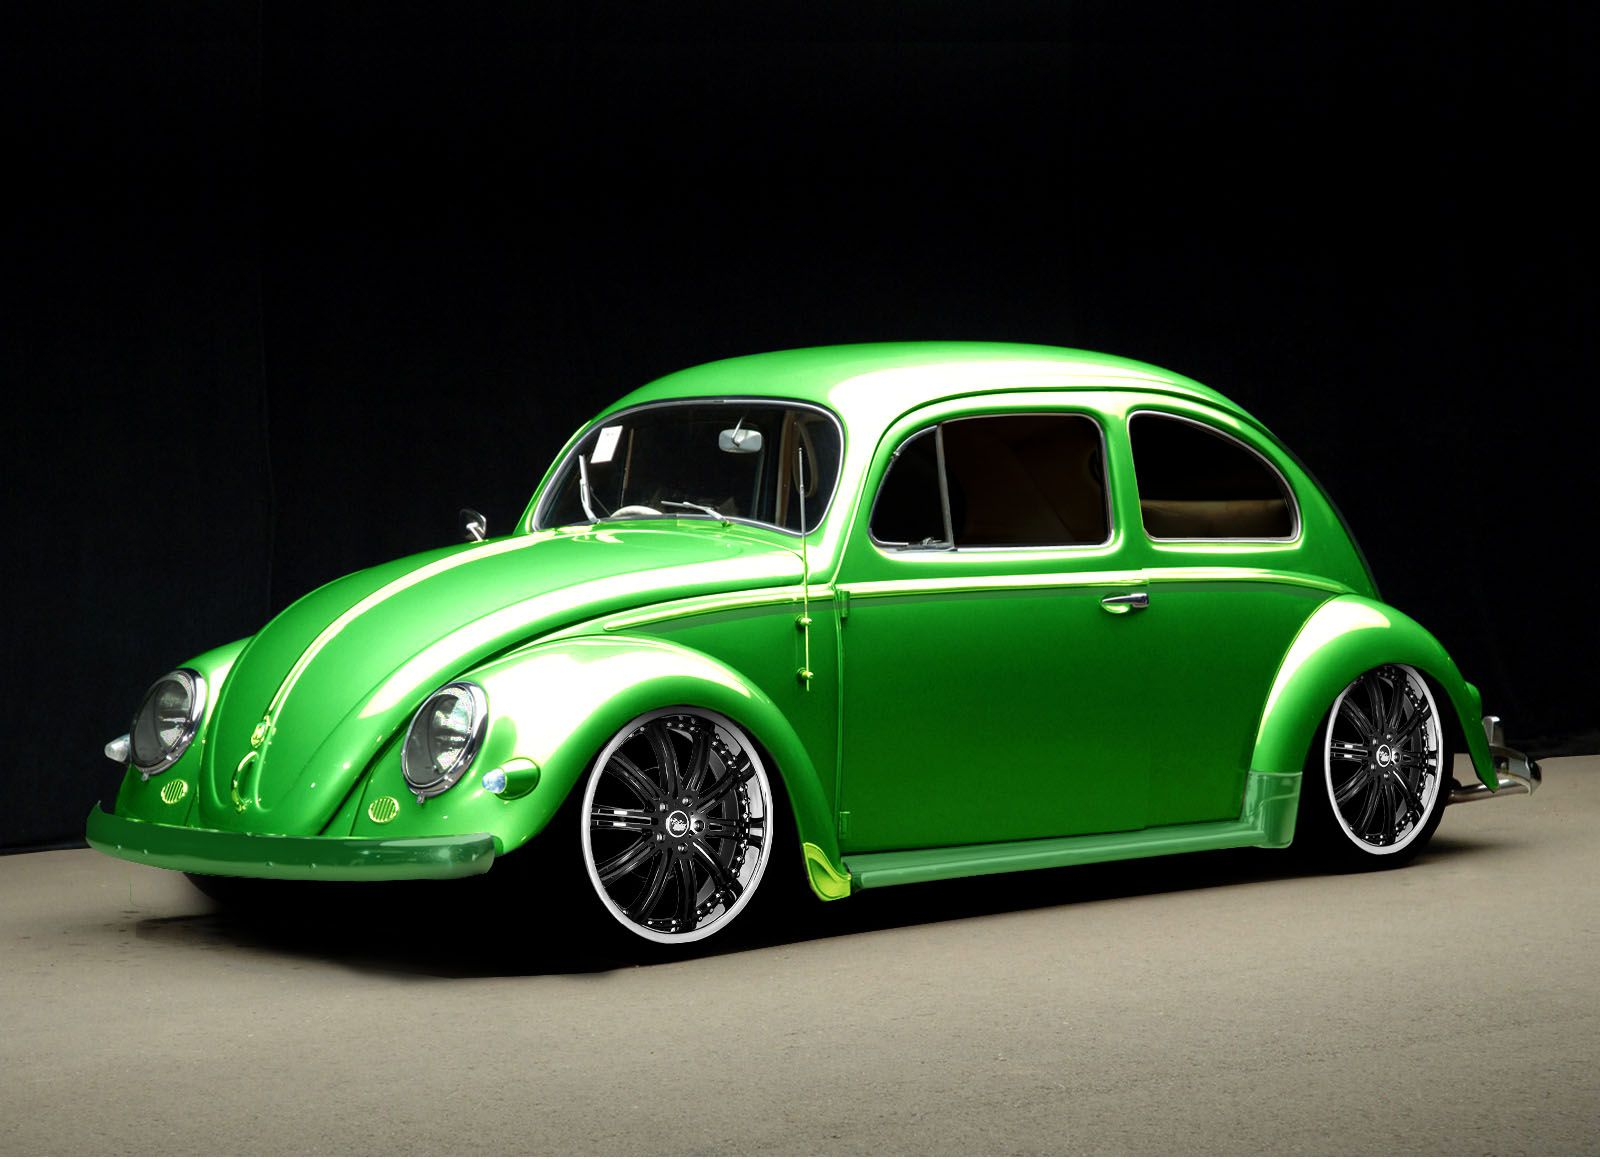 vw beetle greenmachine mean bug x bros apparel vintage motor t shirts volkswagen beetle. Black Bedroom Furniture Sets. Home Design Ideas